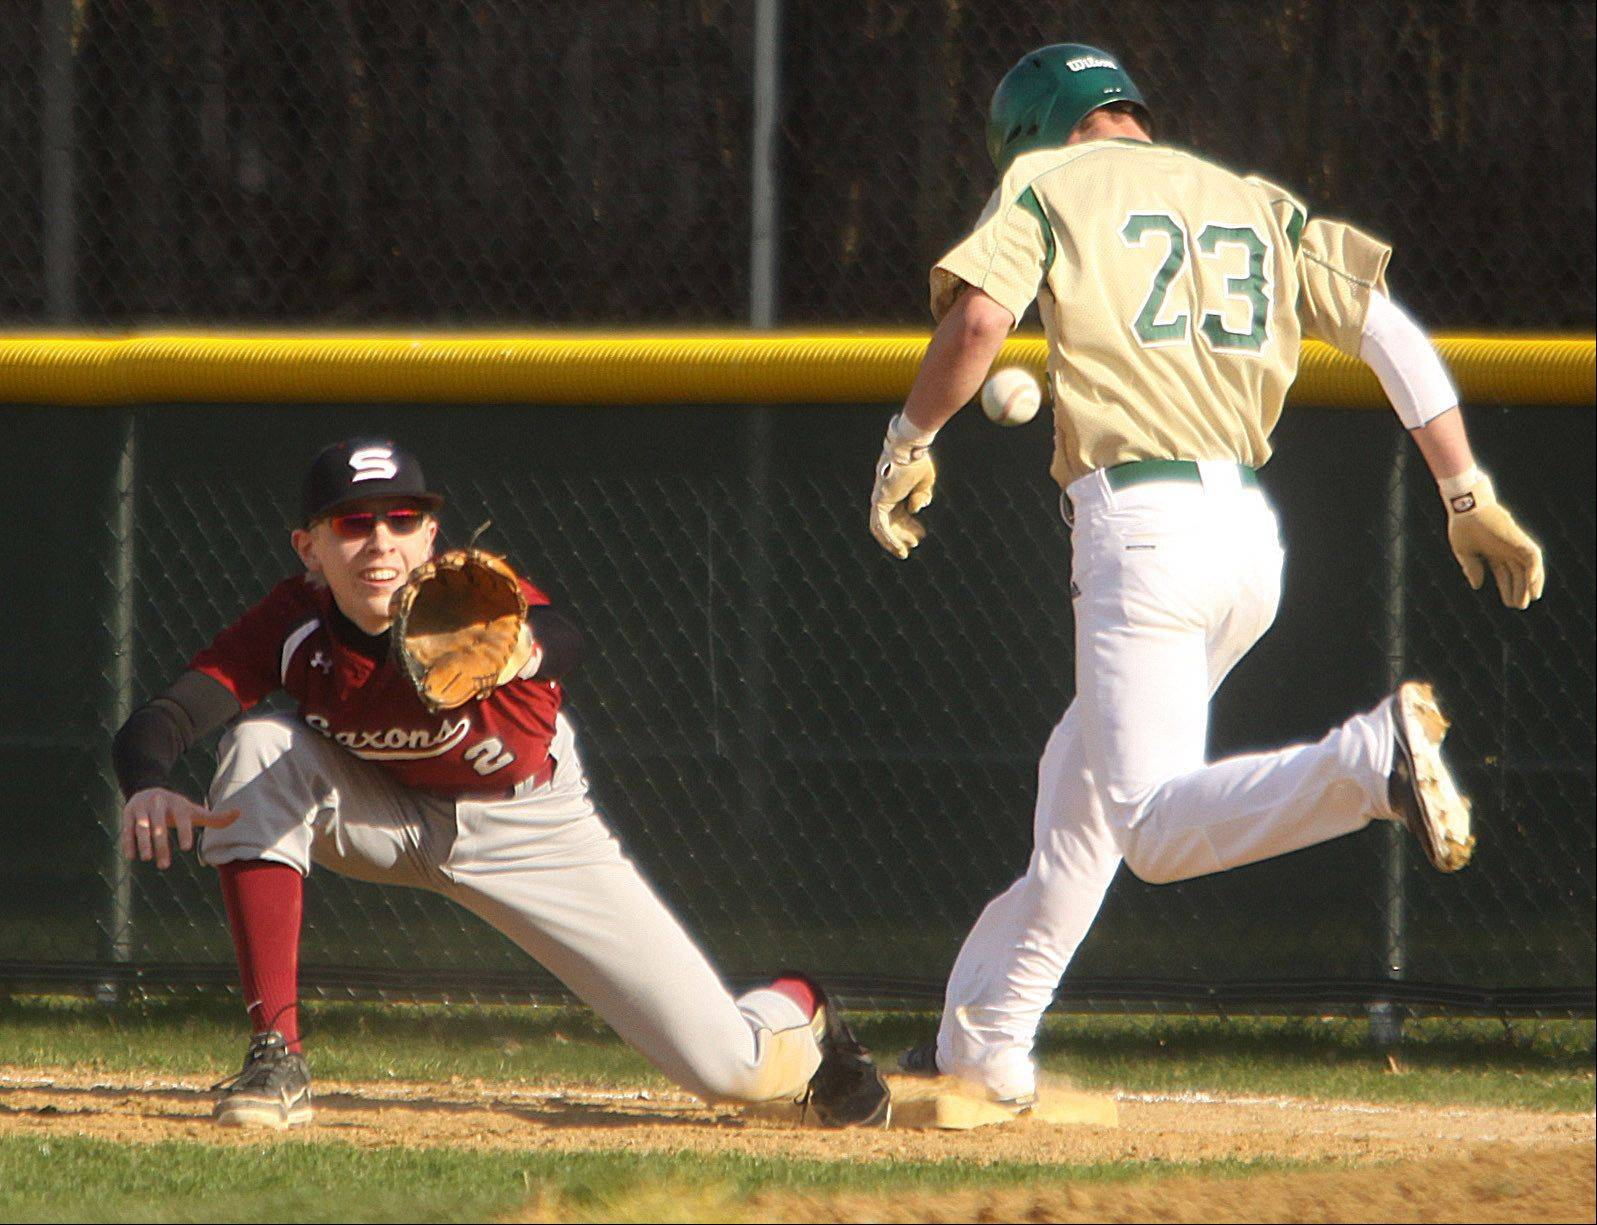 Fremd's Matt Isola, right, is safe at first just ahead of the ball received by Schaumburg first baseman Joe Petritis in Palatine on Monday.